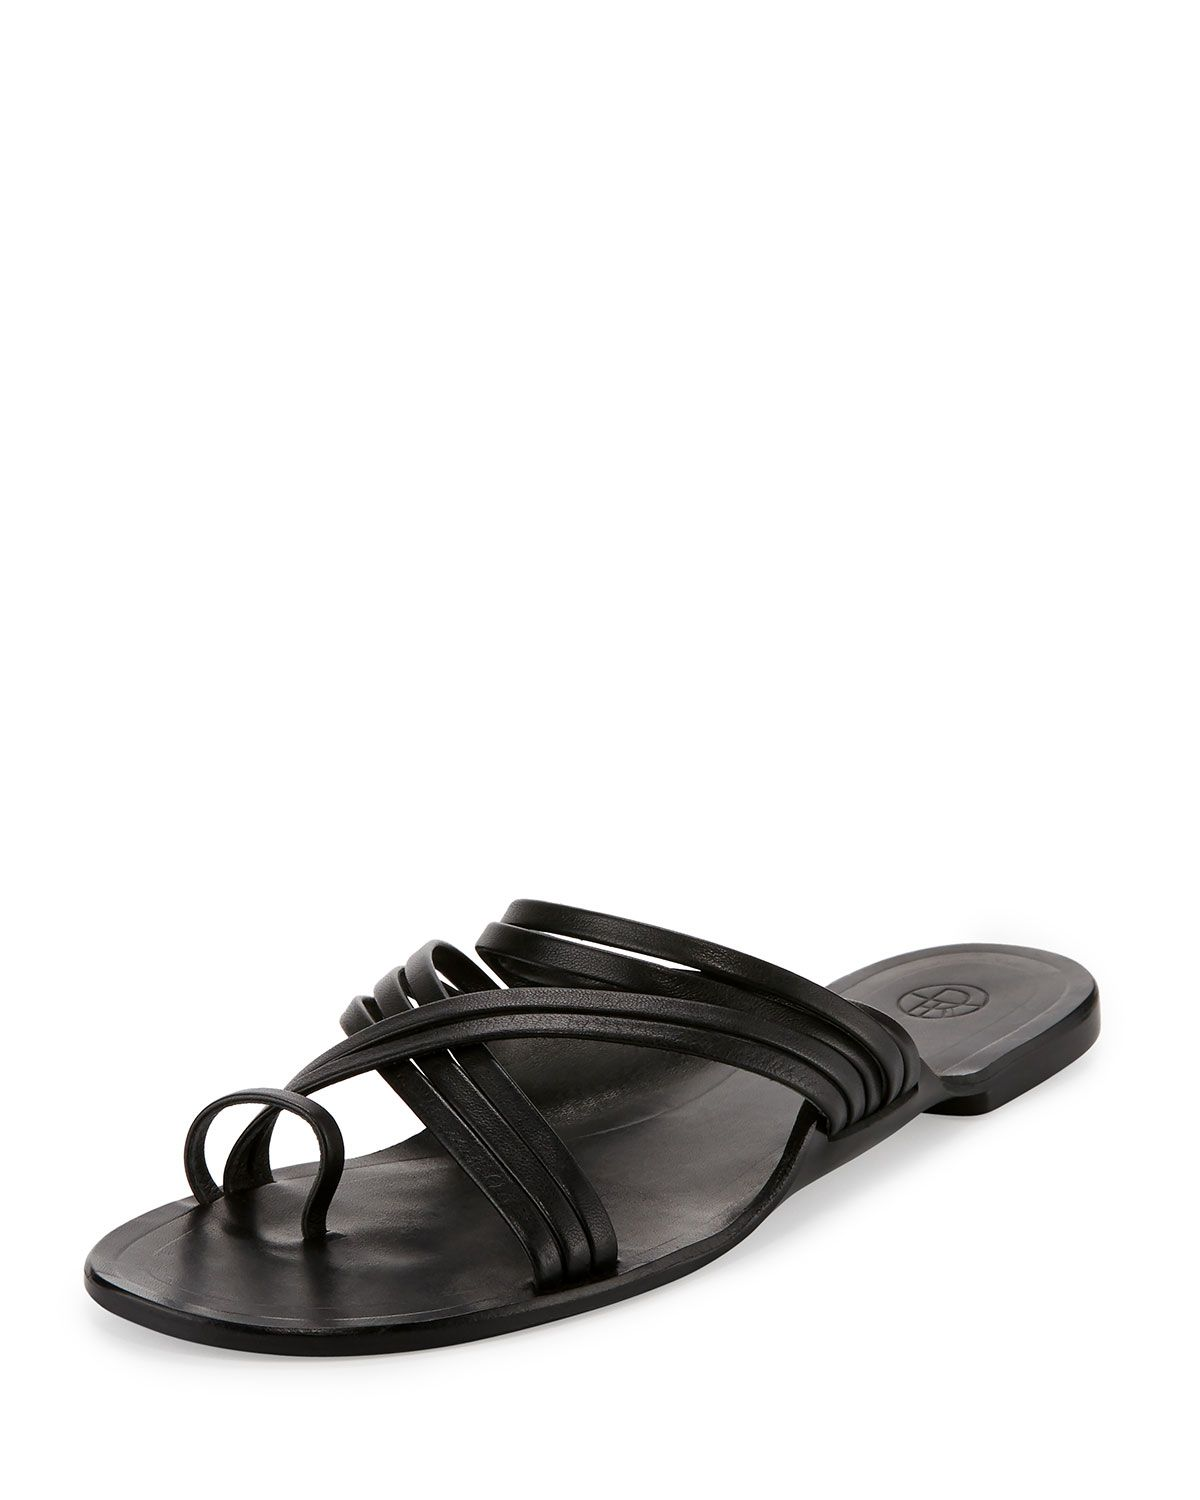 50e188656211 THE ROW Cannes Strappy Flat Sandal